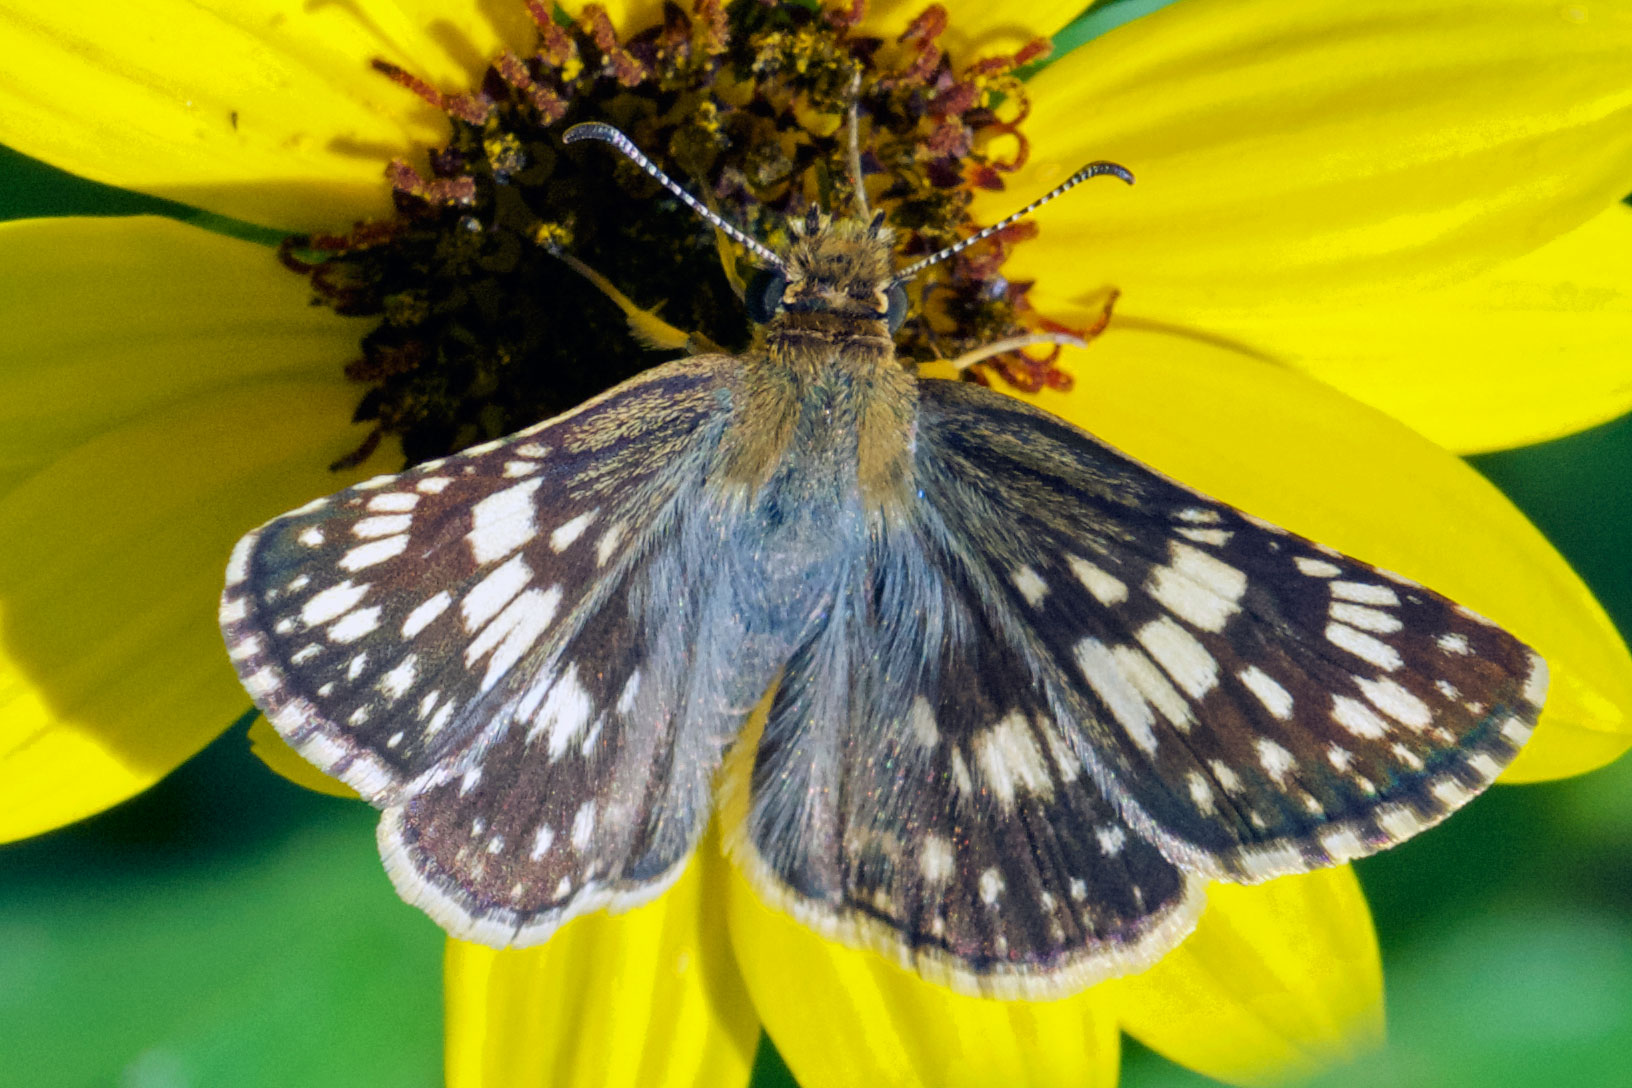 Checkered-Skipper (Pyrgus sp.), Boca Raton, FL, September 11, 2015.